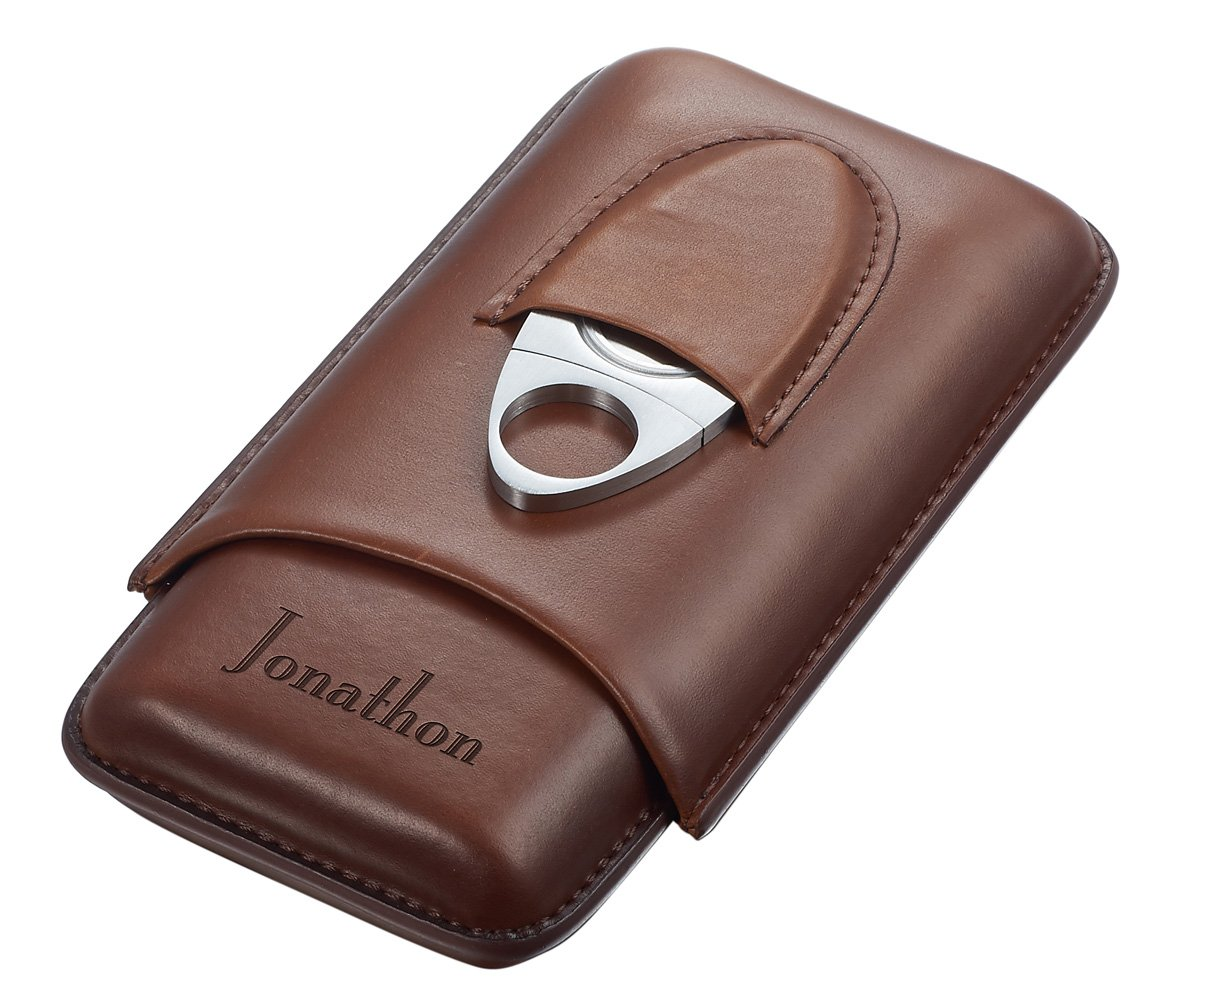 Personalized Legend Saddle Leather 3-Cigar Case and Cutter with Free Engraving